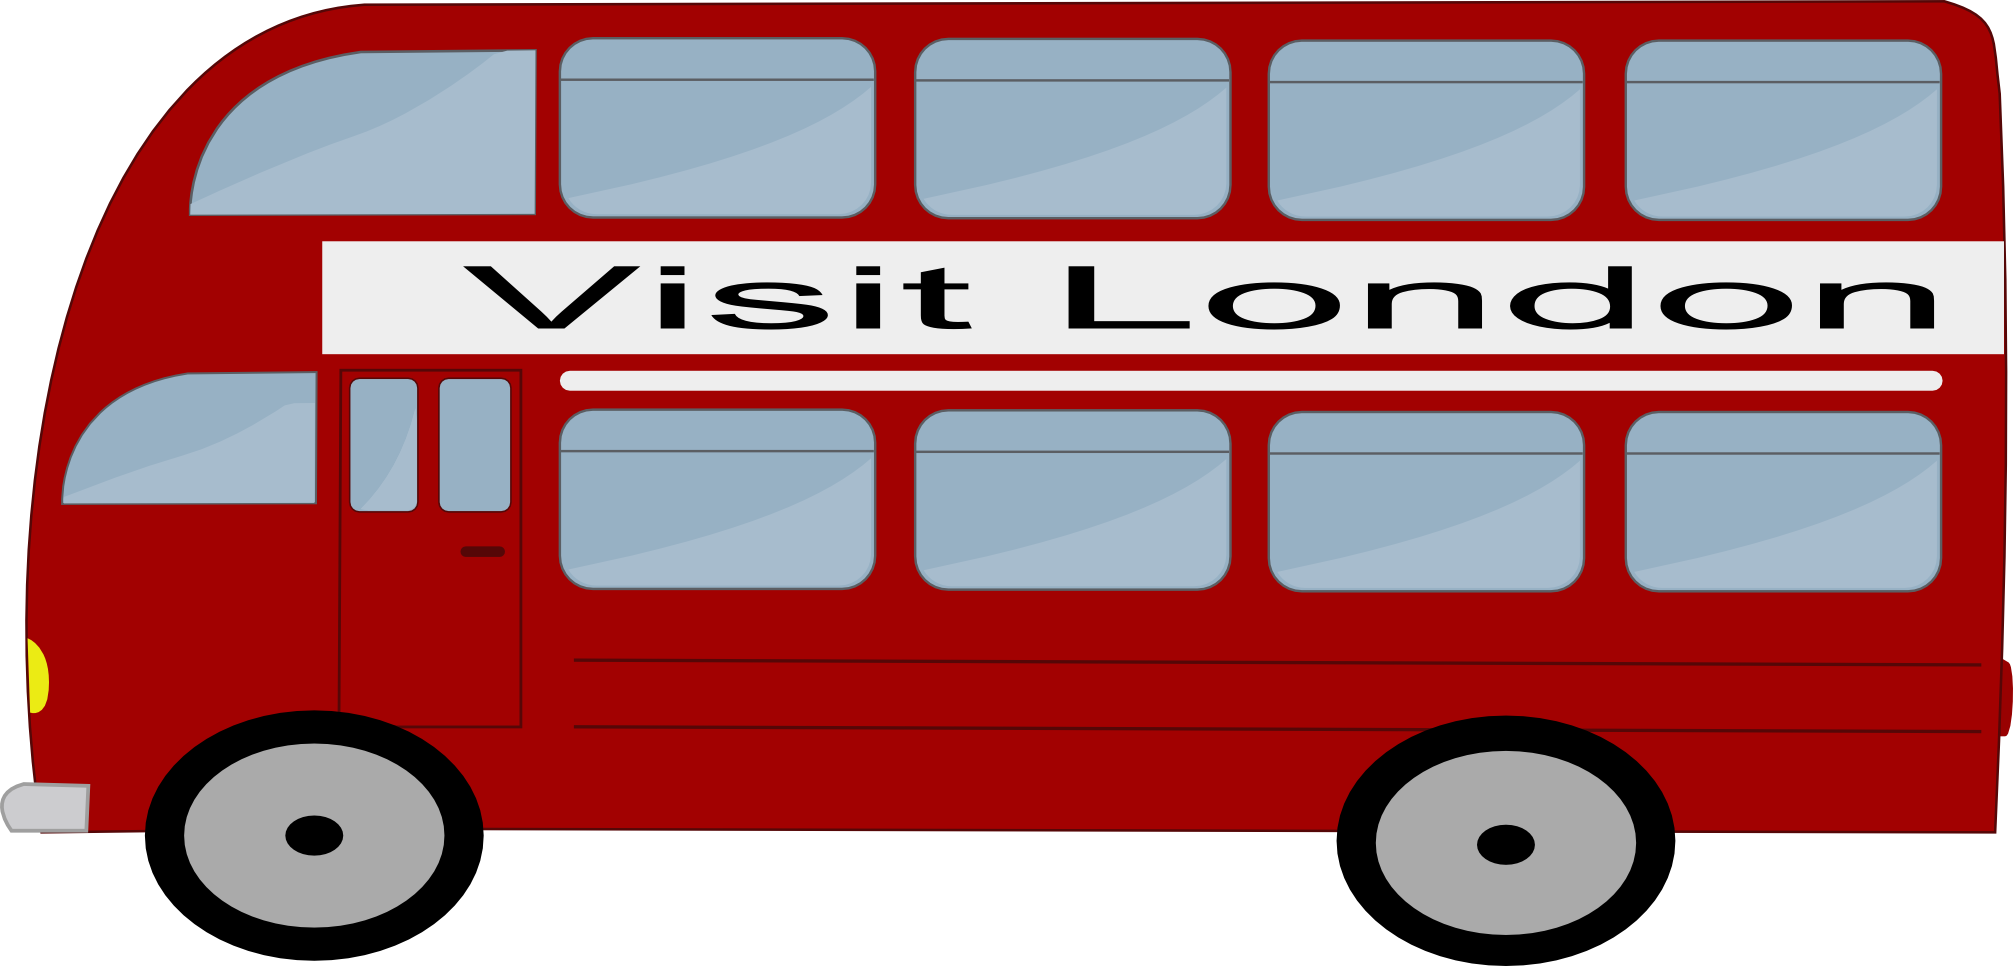 Tour panda free images. Traveling clipart charter bus